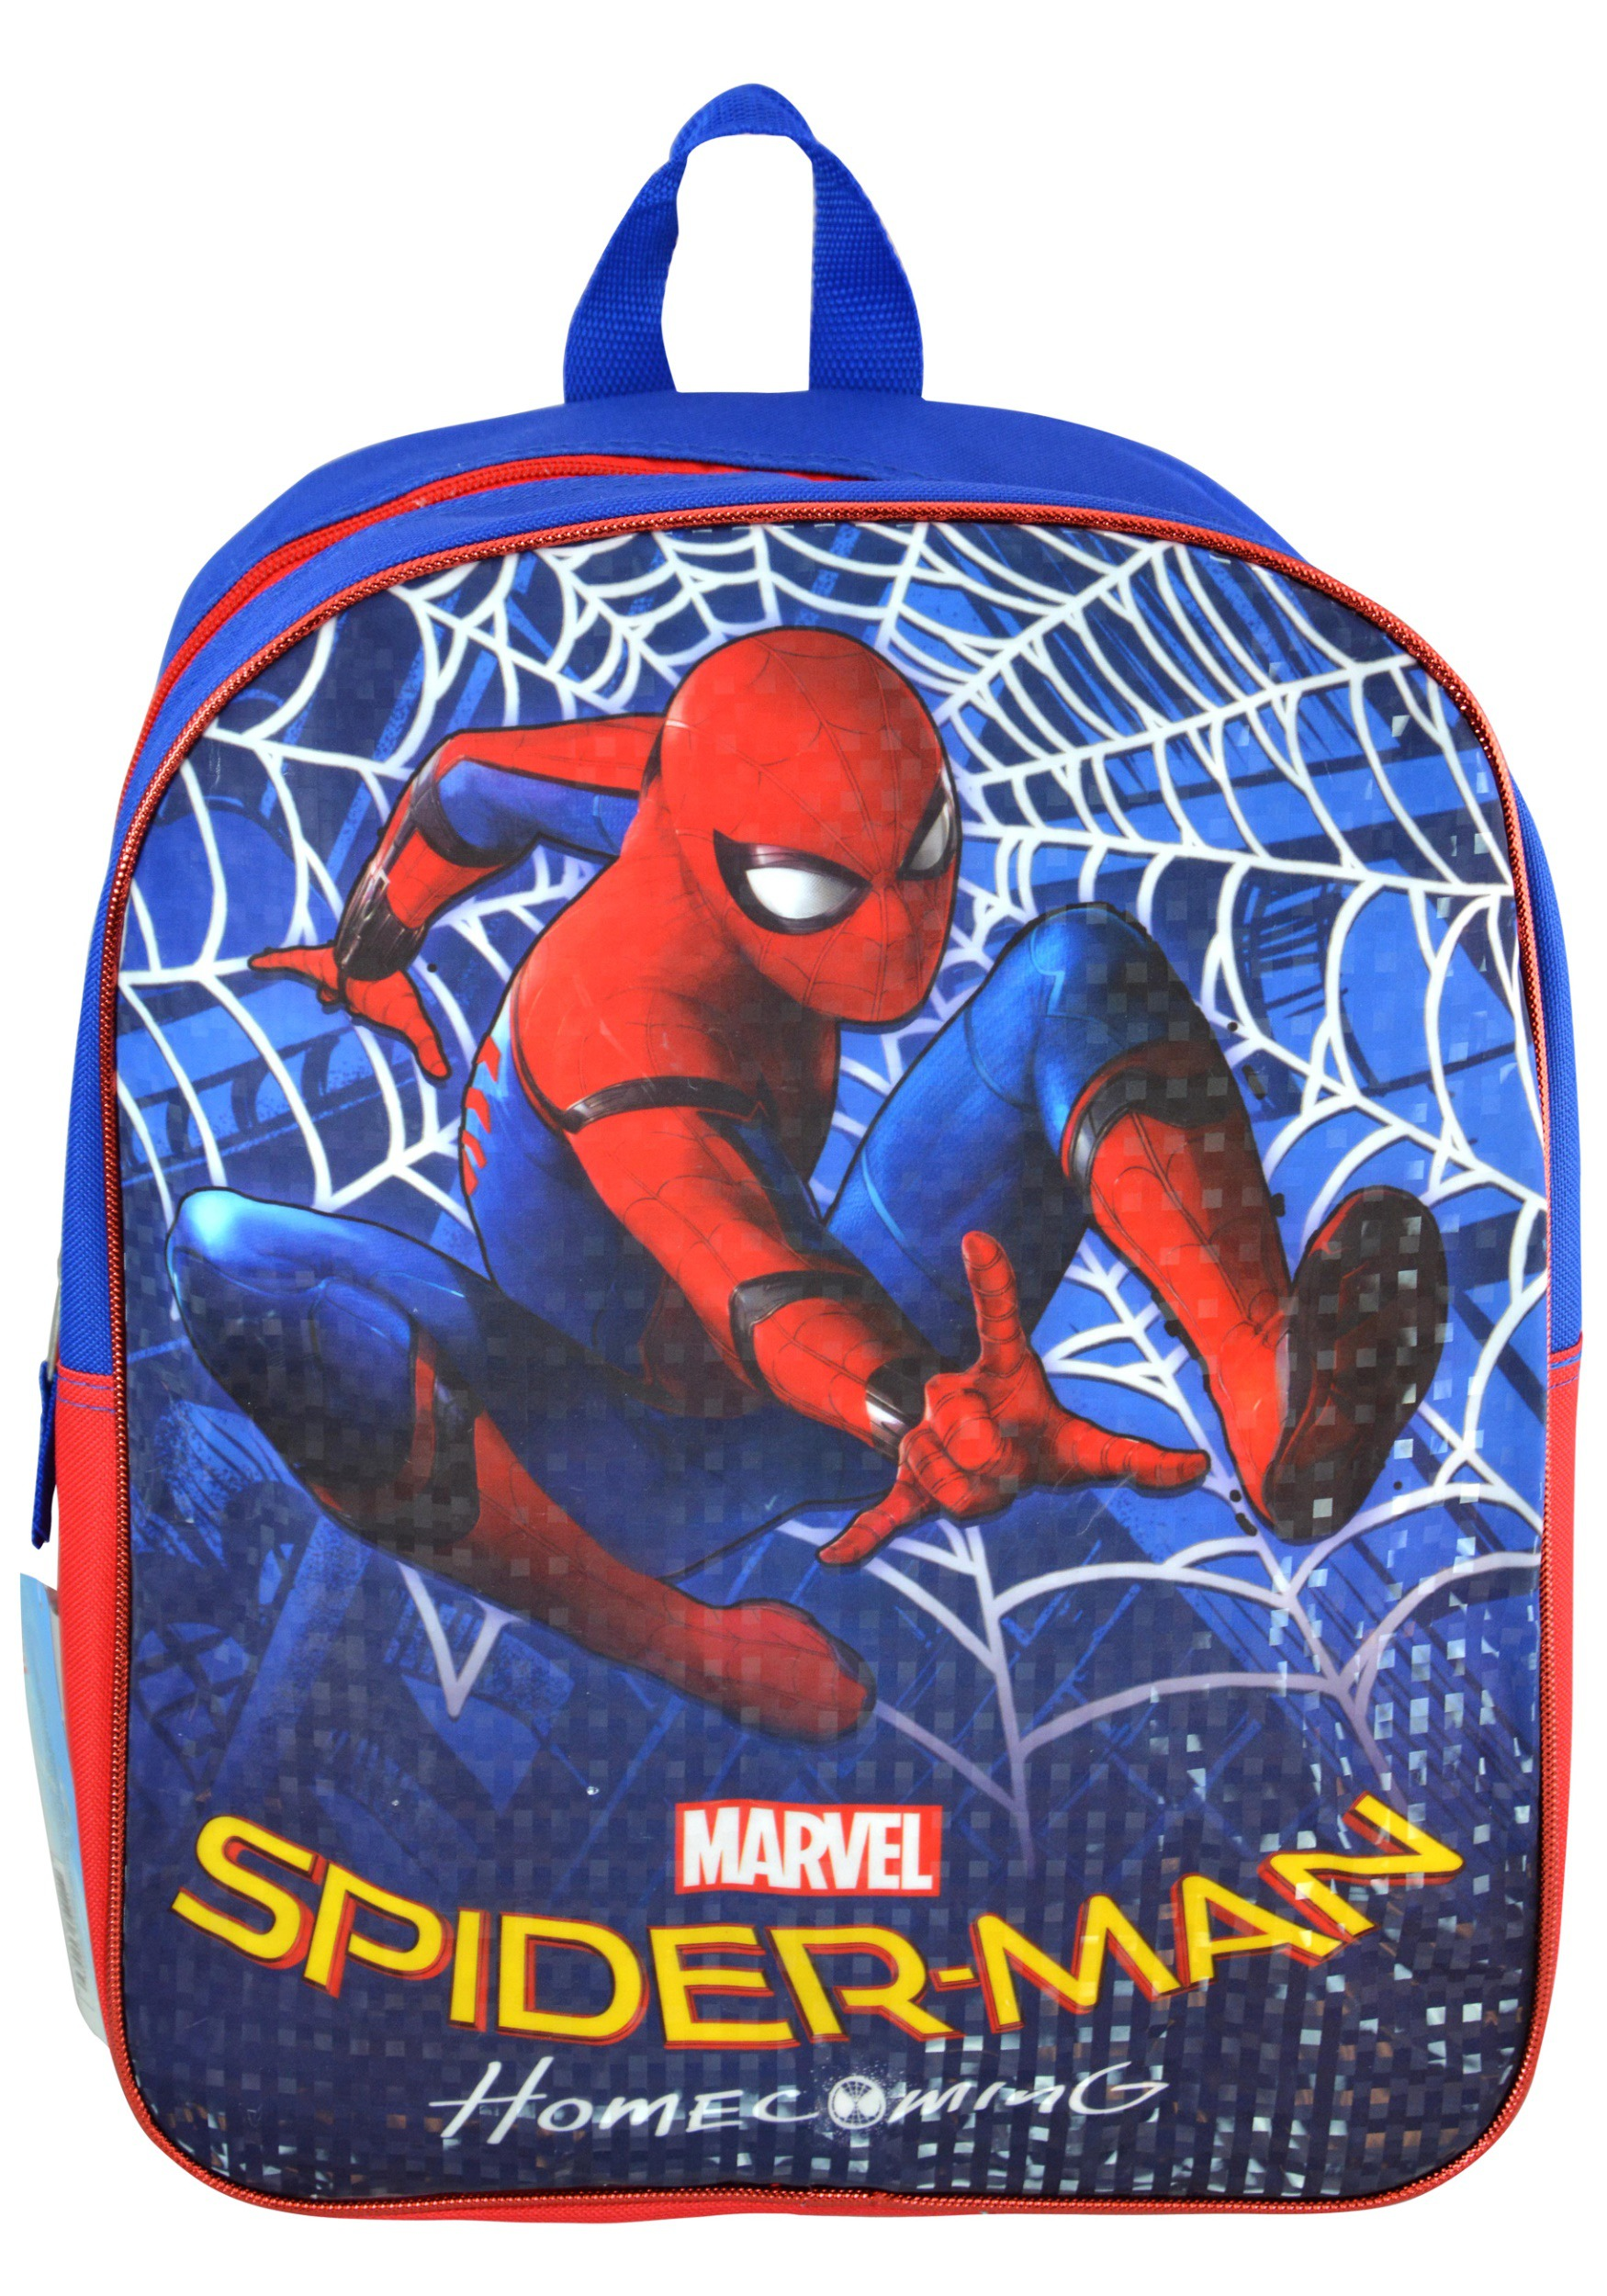 Spider-Man Homecoming Backpack UPDSMHB